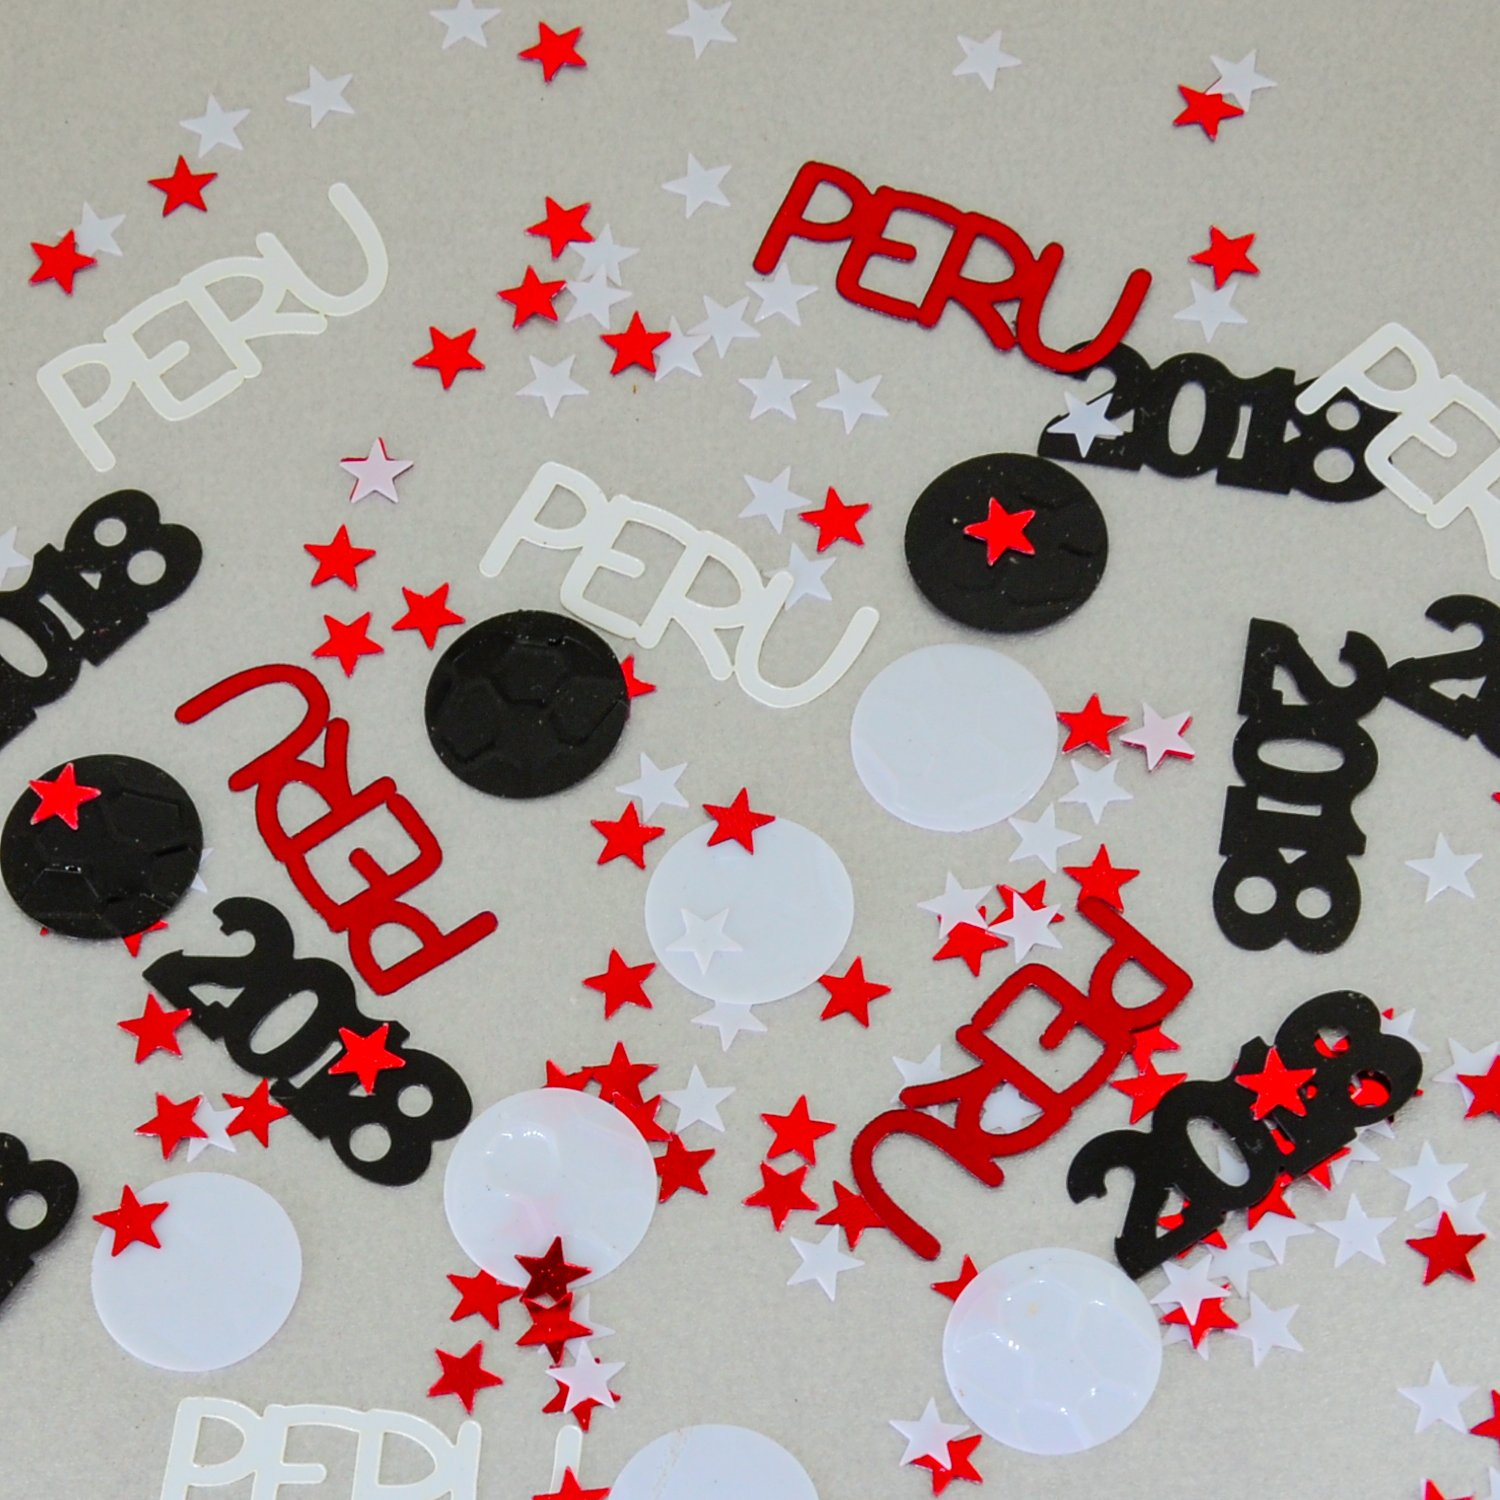 Peru World Cup Confetti 2018 Ball, Stars Red, White - Pouched #6153 - Free Ship by Jimmy Jems (Image #1)